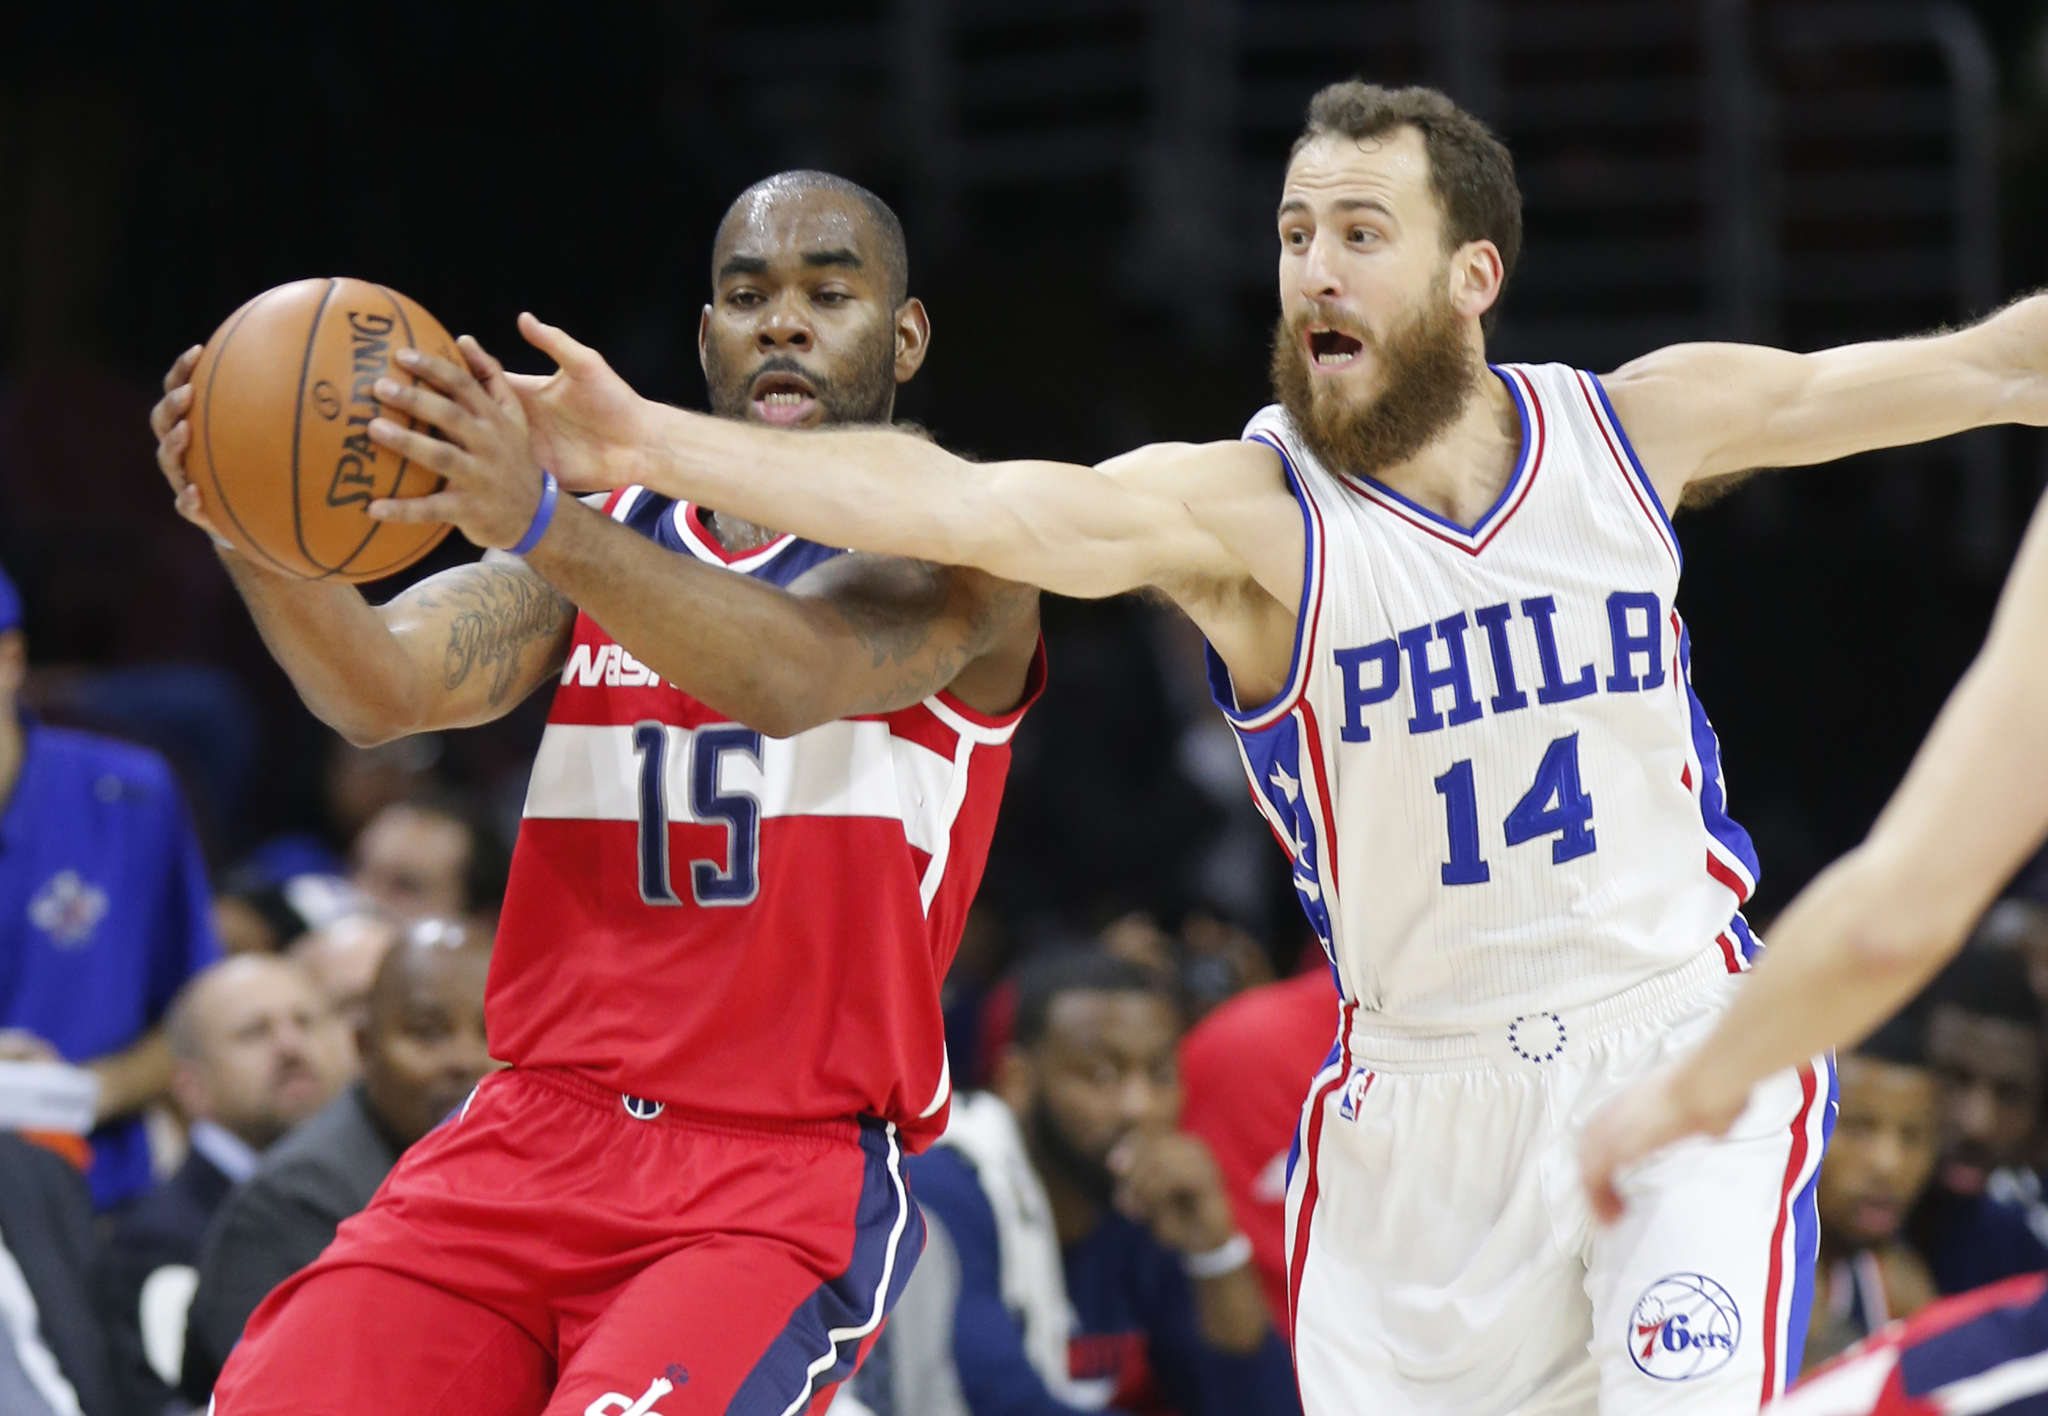 Sixers´ Sergio Rodriguez tries to steal ball from Wizards´ Marcus Thornton.